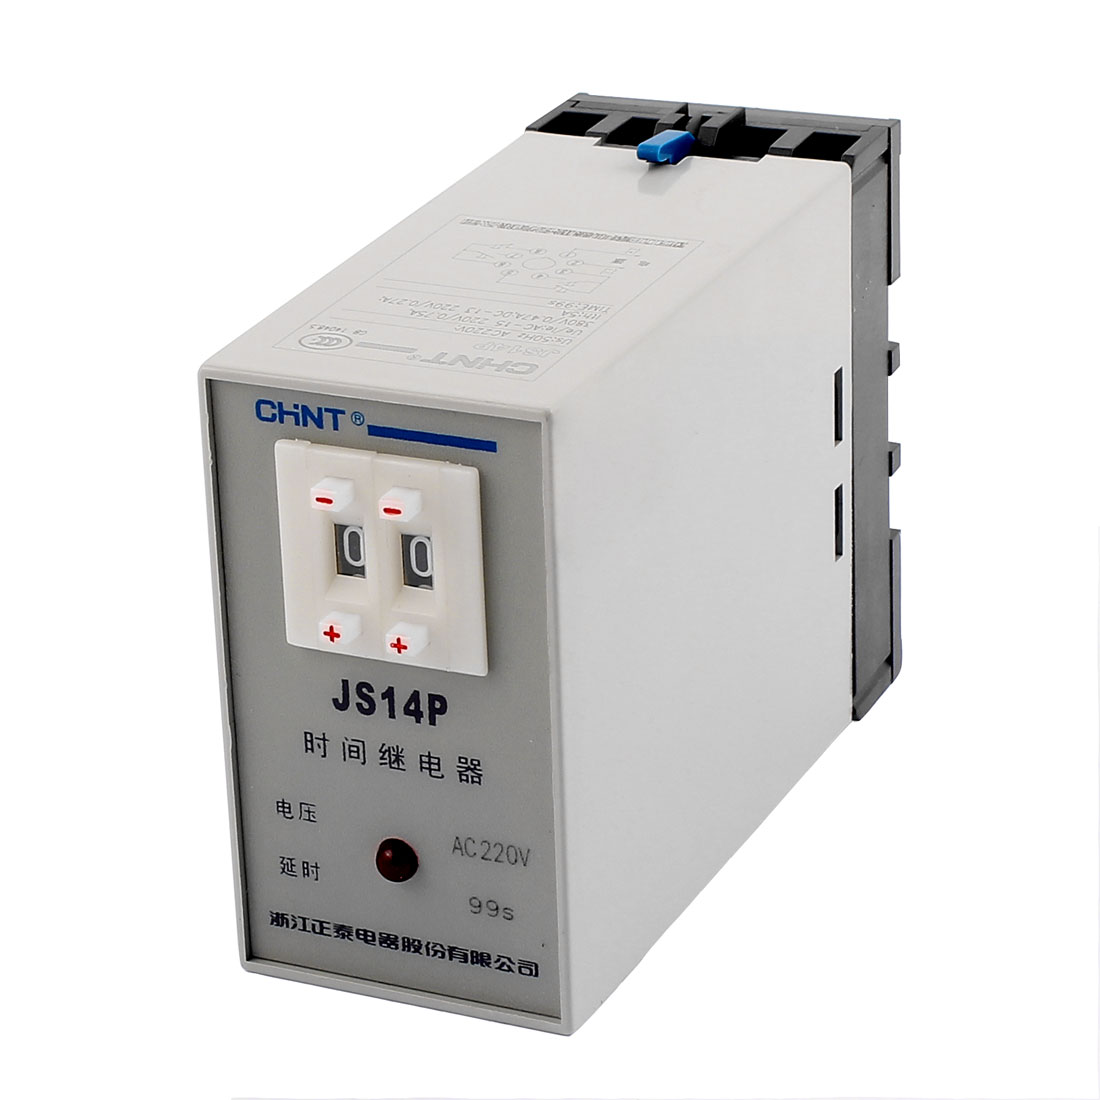 JS14P AC 220V 1-99 Seconds Two adjustment Power On Delay Timer Digital Display Time Relay